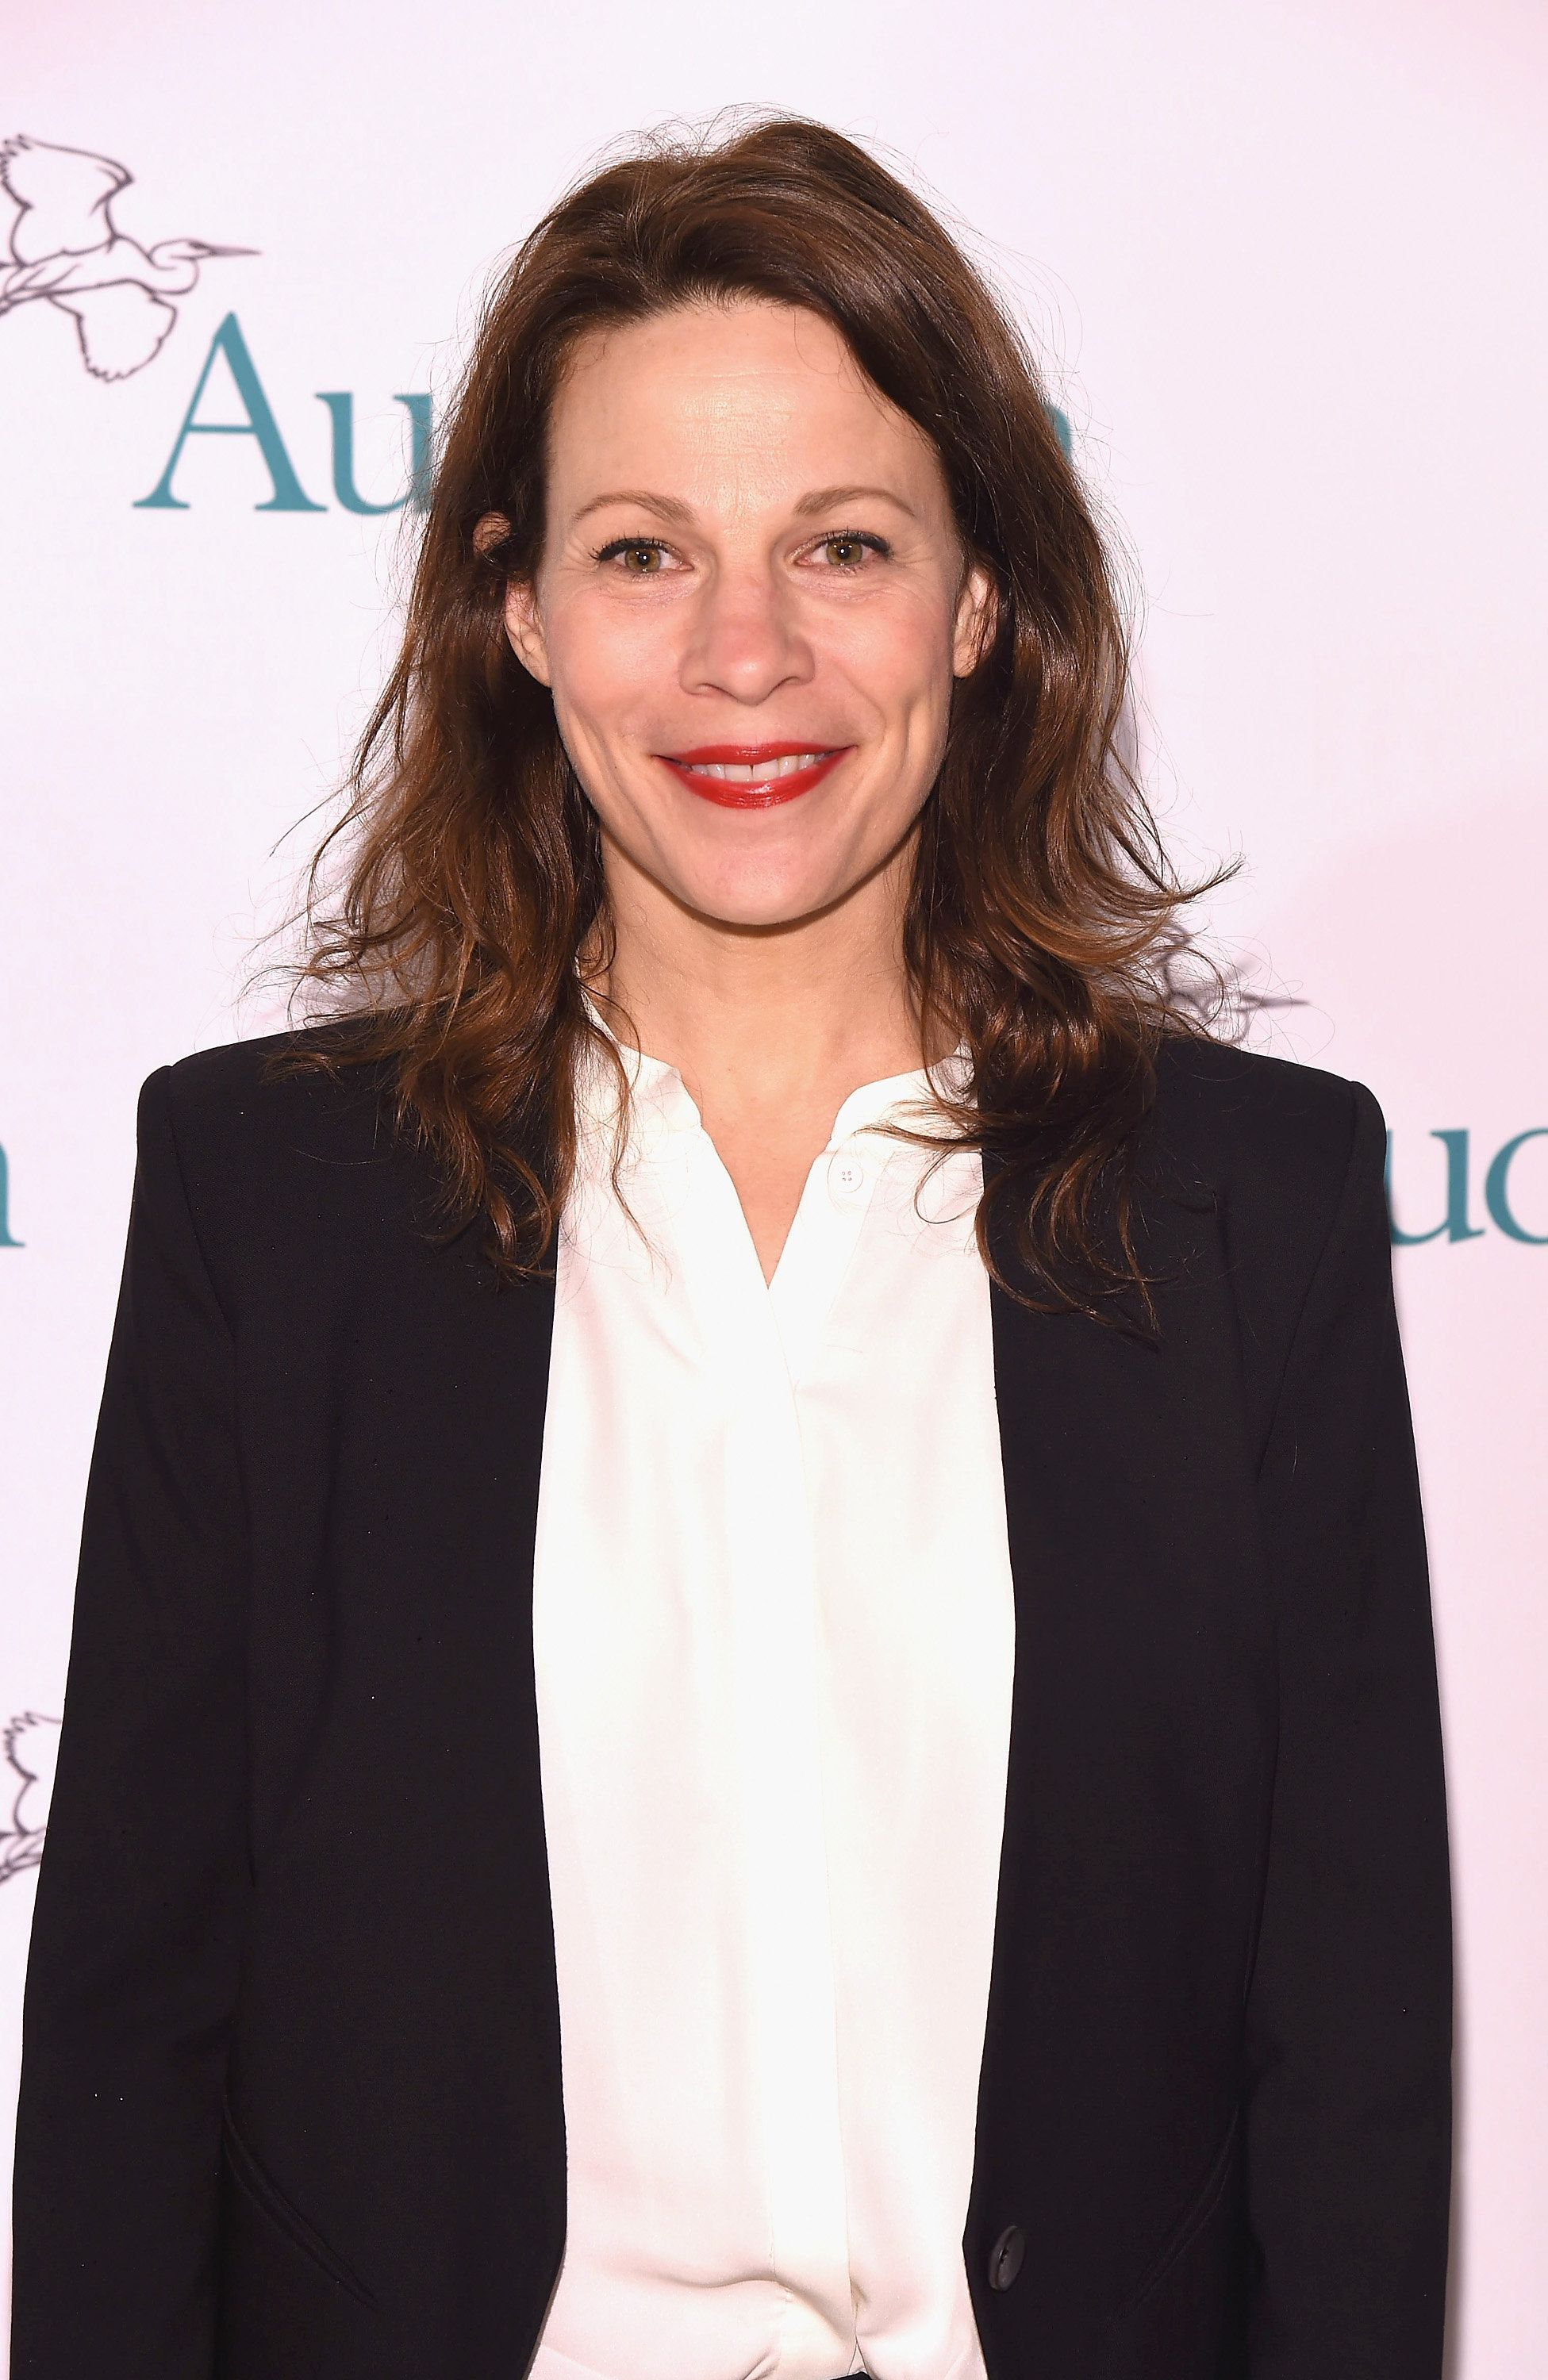 NEW YORK, NY - MARCH 31:  Actress Lili Taylor attends The 2015 National Audobon Society Gala at The Plaza Hotel on March 31, 2015 in New York City.  (Photo by Gary Gershoff/WireImage)